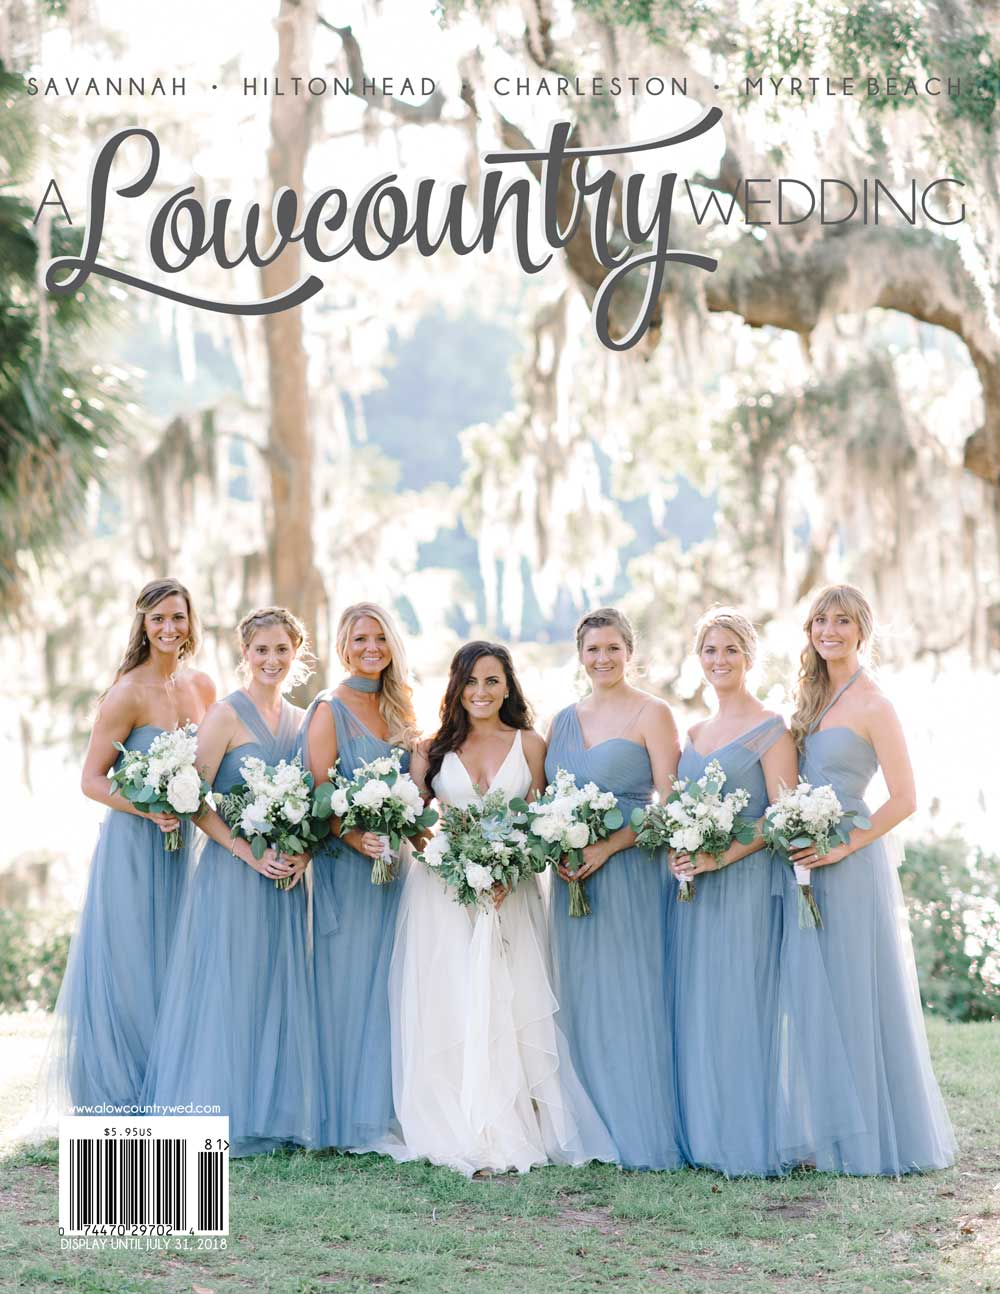 A Lowcountry Wedding Cover